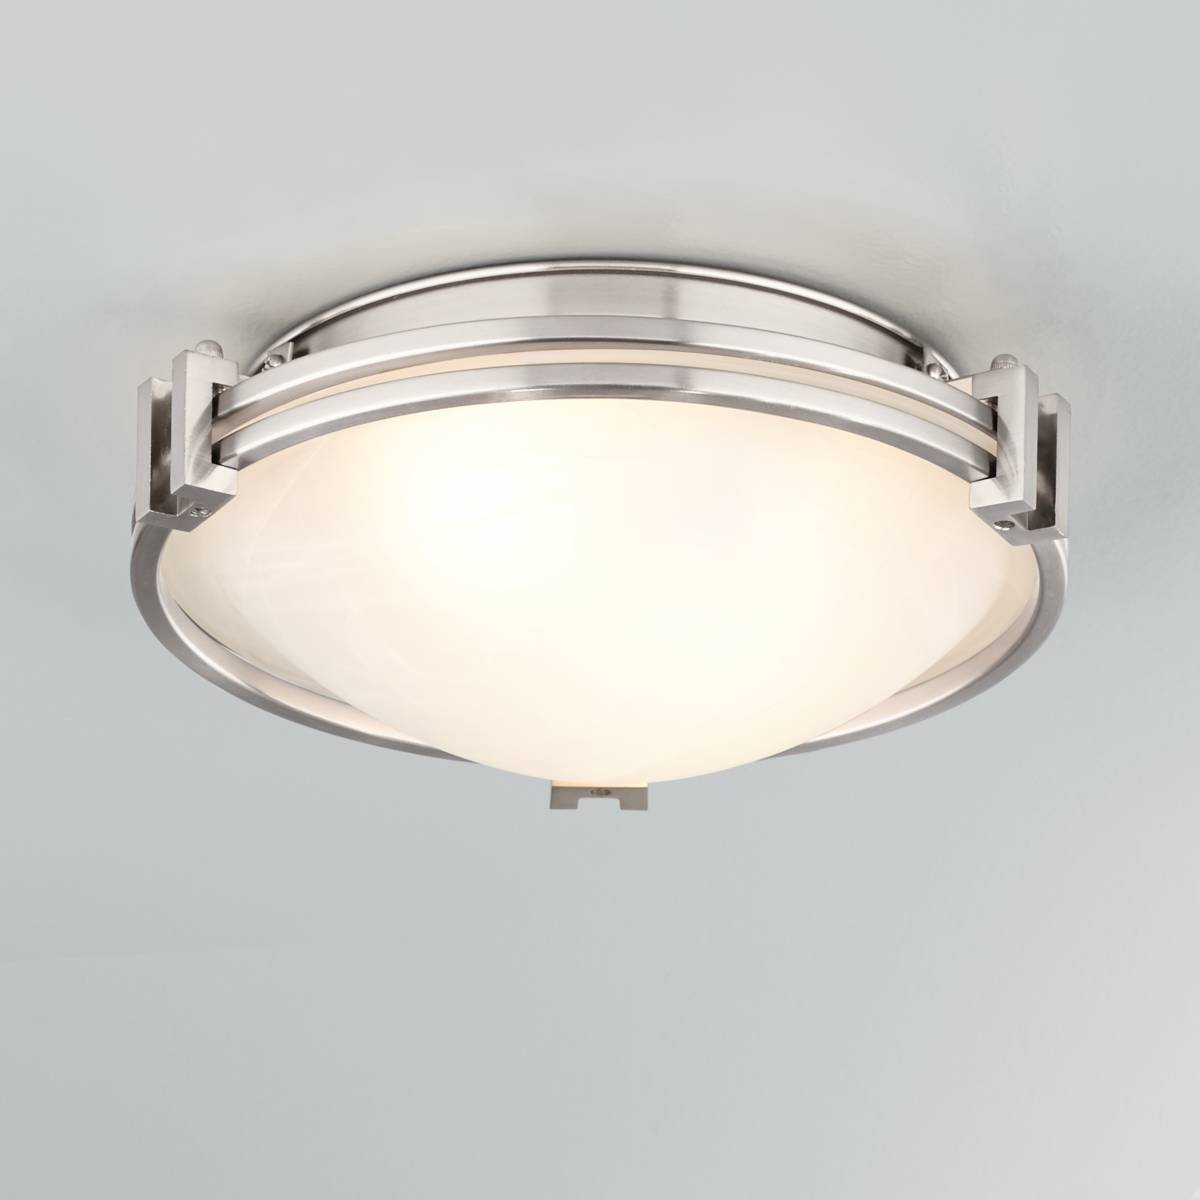 Lighting Products: Flush Mount Ceiling Lights